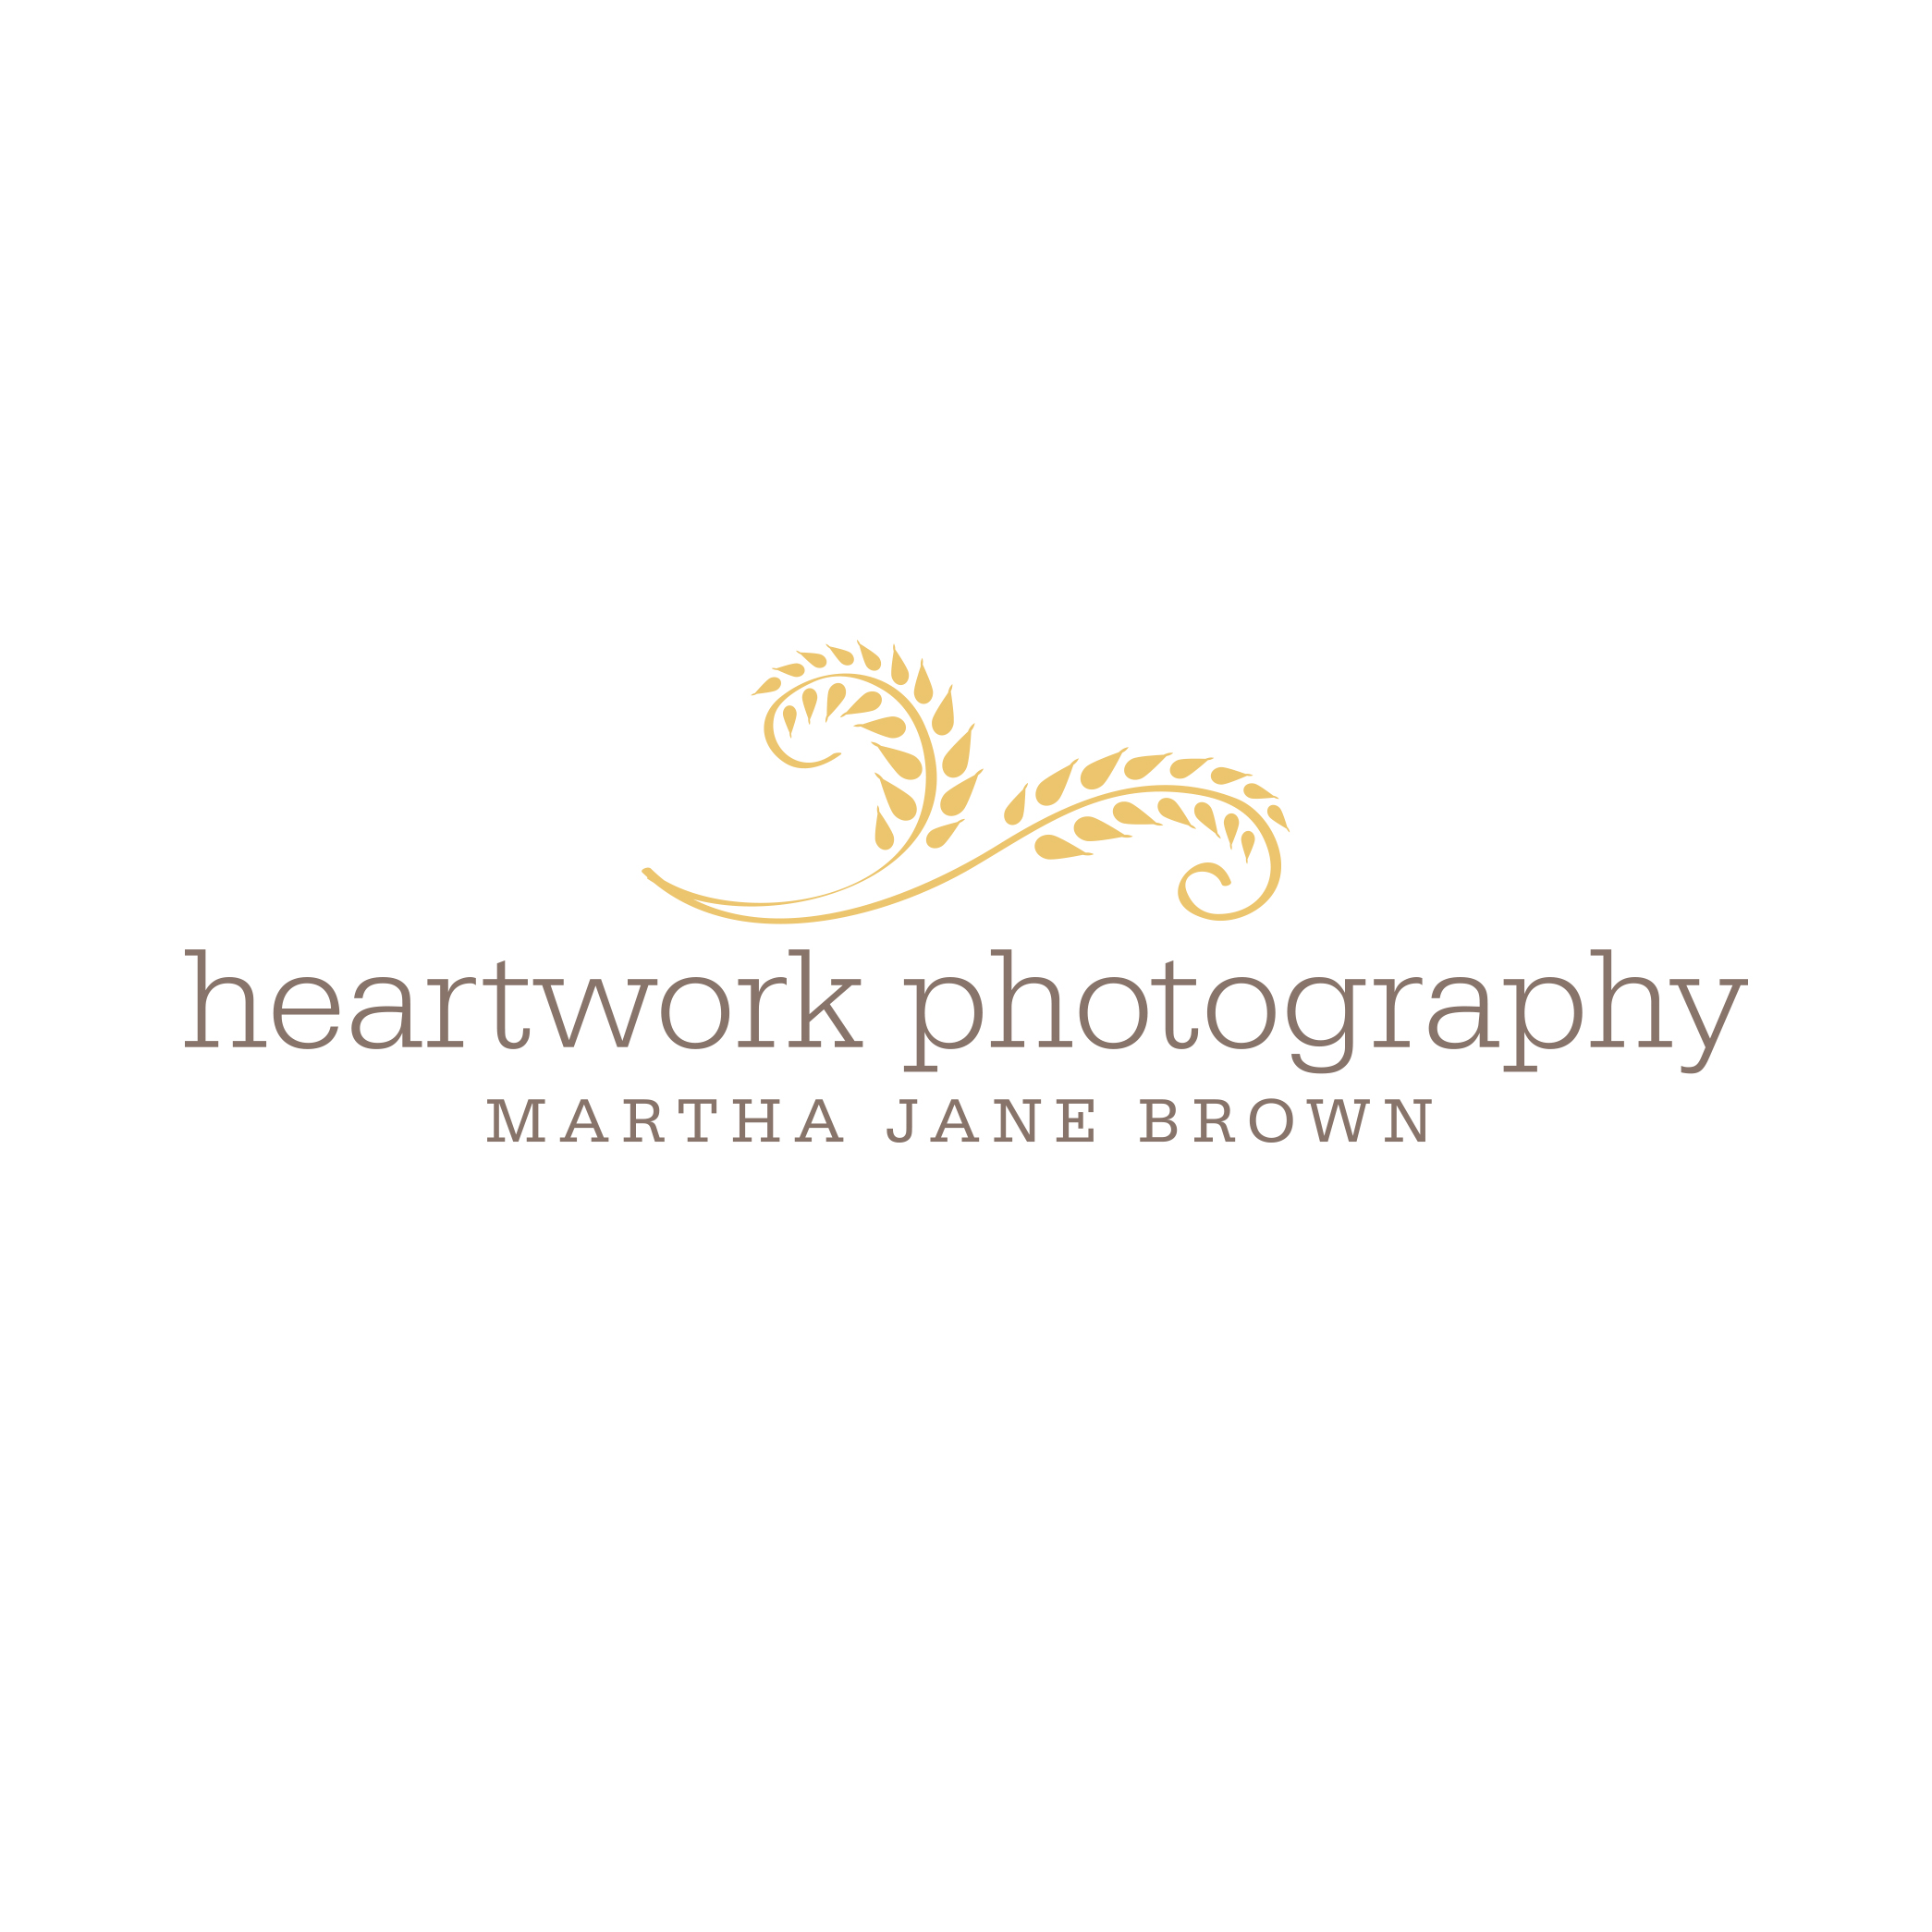 Heartwork Photography